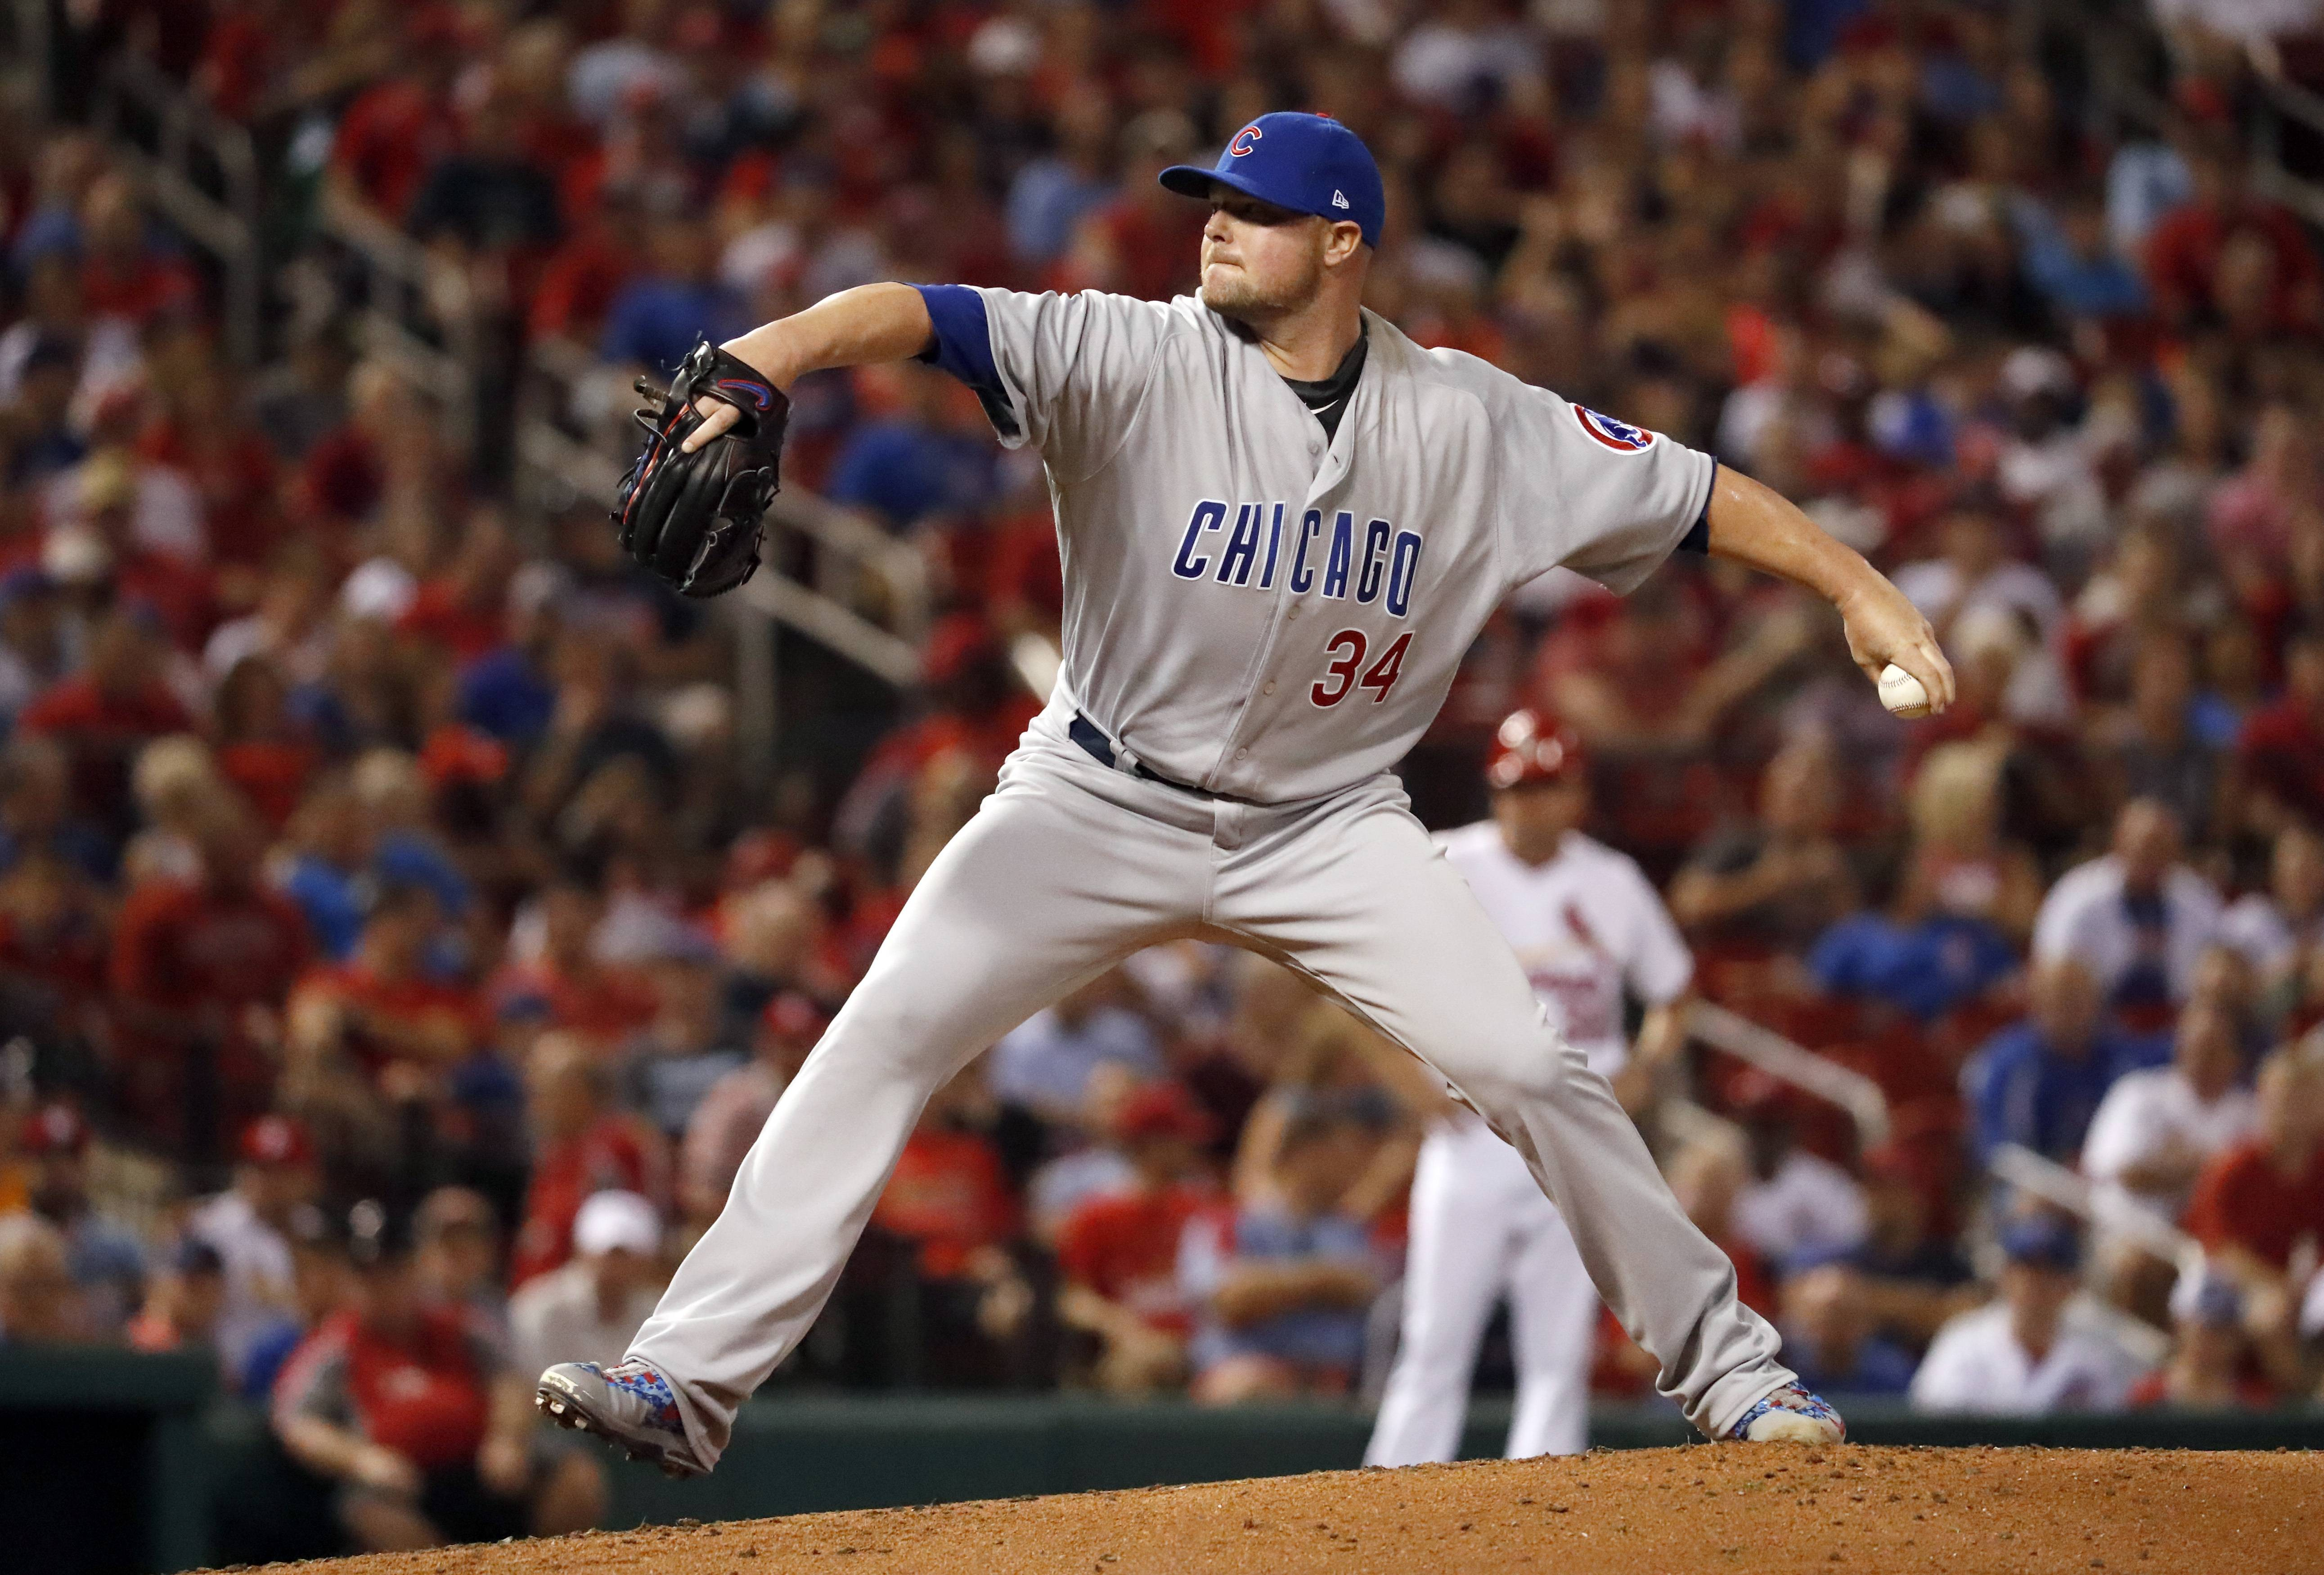 Cubs starting pitcher Jon Lester gave up one run over six innings Monday night in a 10-2 win in St. Louis.